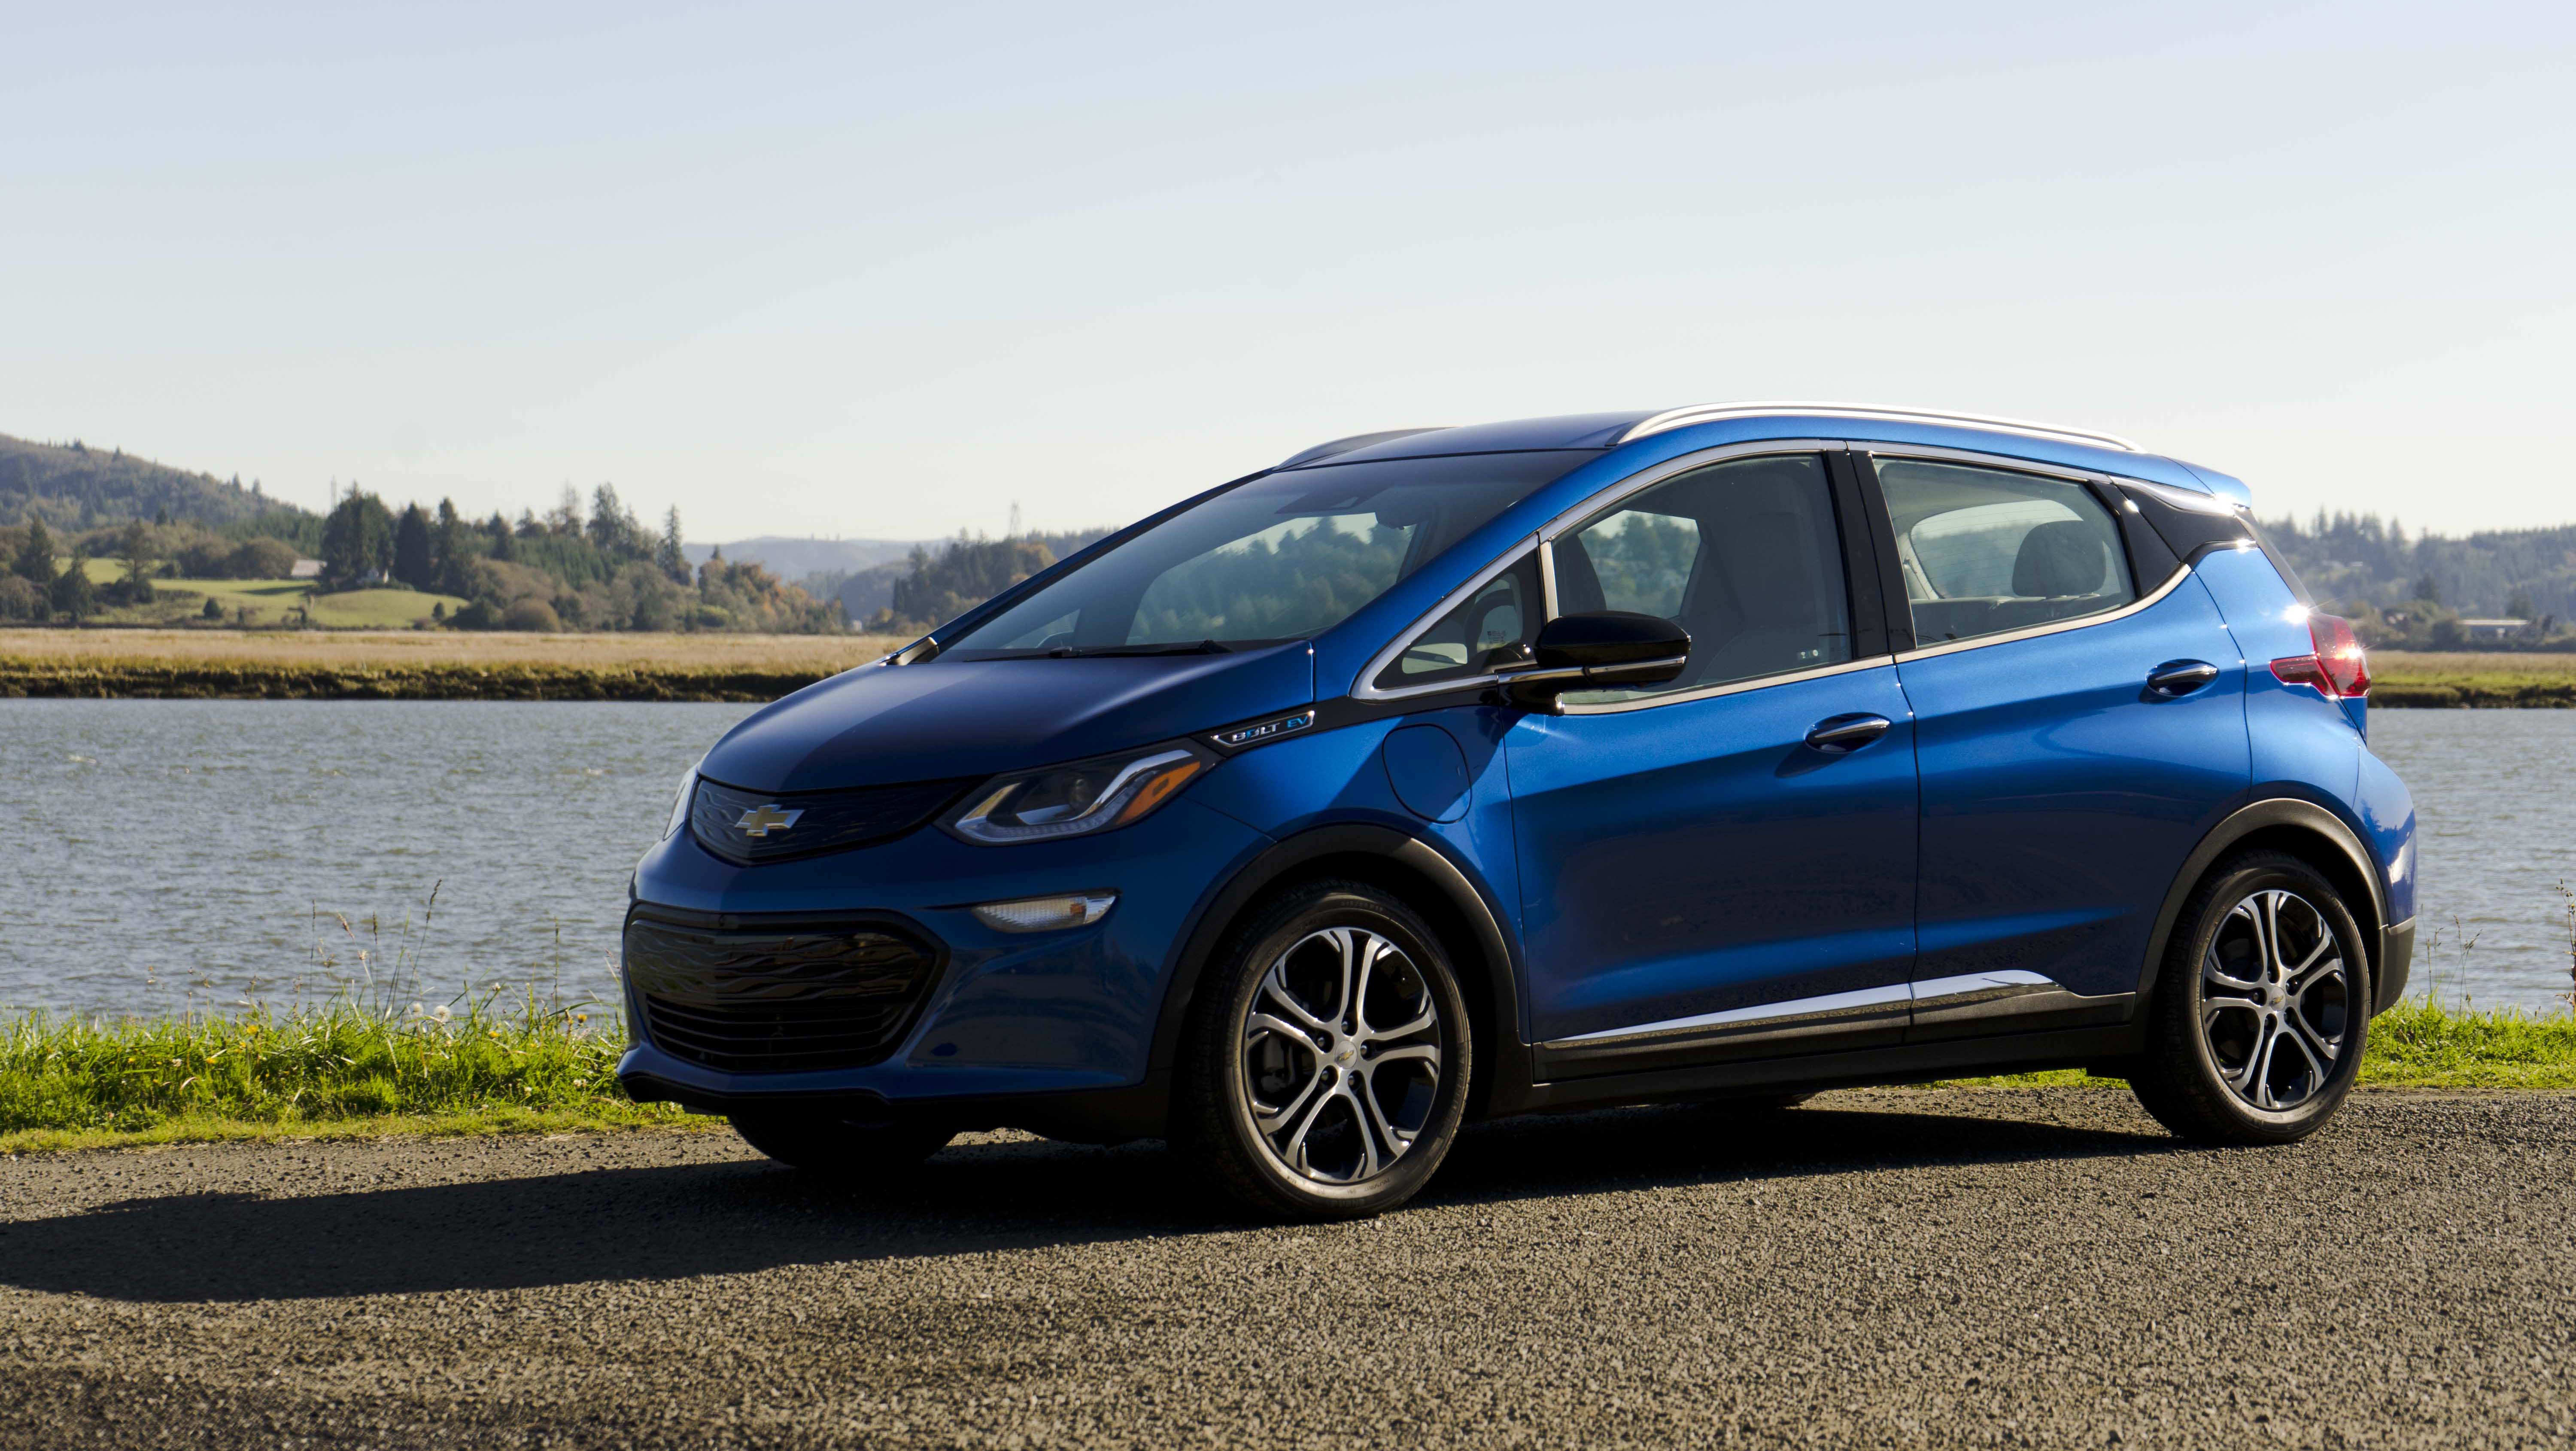 2020 Chevy Bolt Release Date